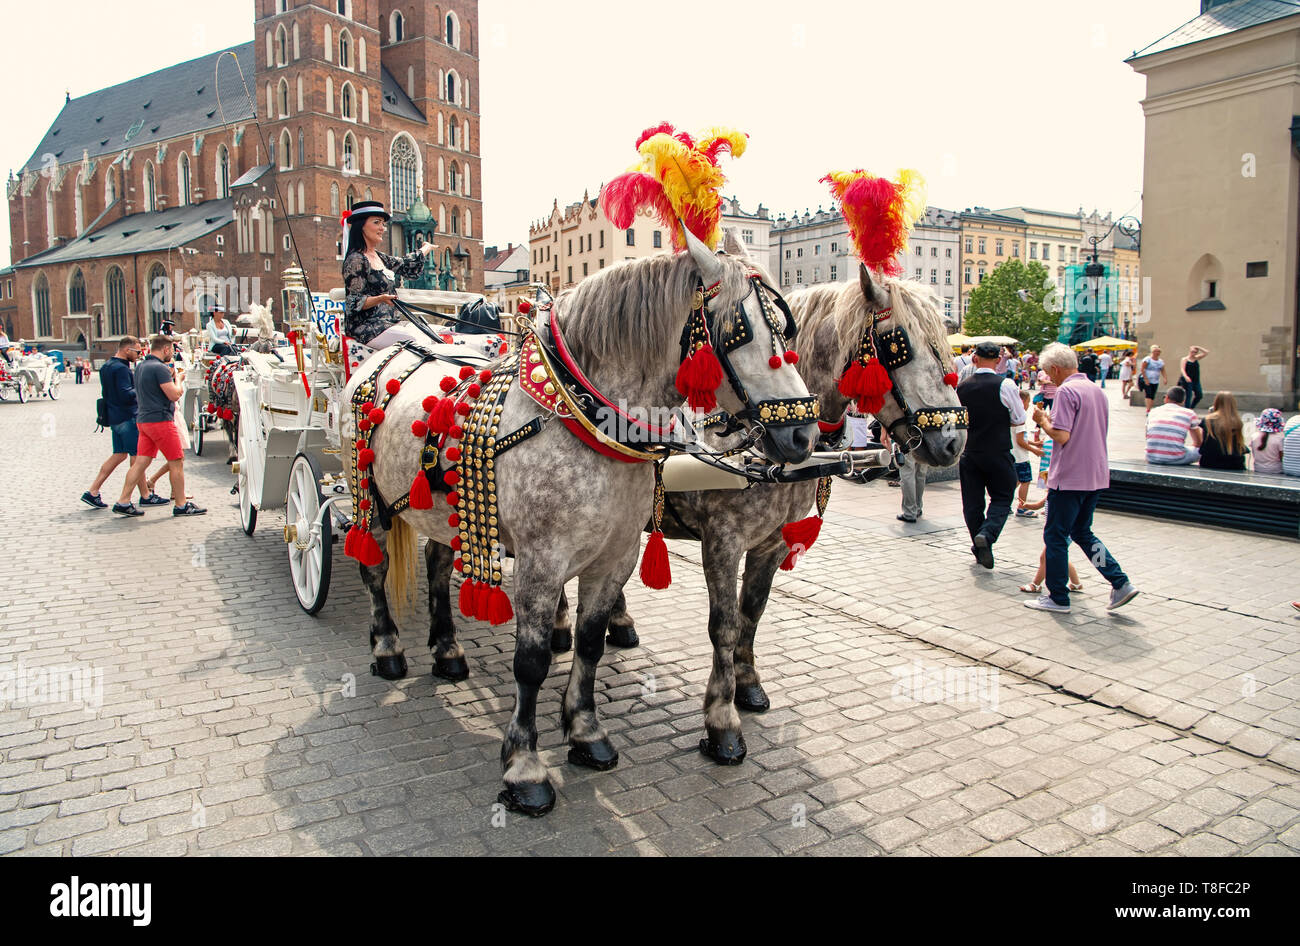 Krakow, Poland - June 04, 2016: girl rider invite to horse carriage ride in city square. Vacation, tour, travelling, discovery concept - Stock Image